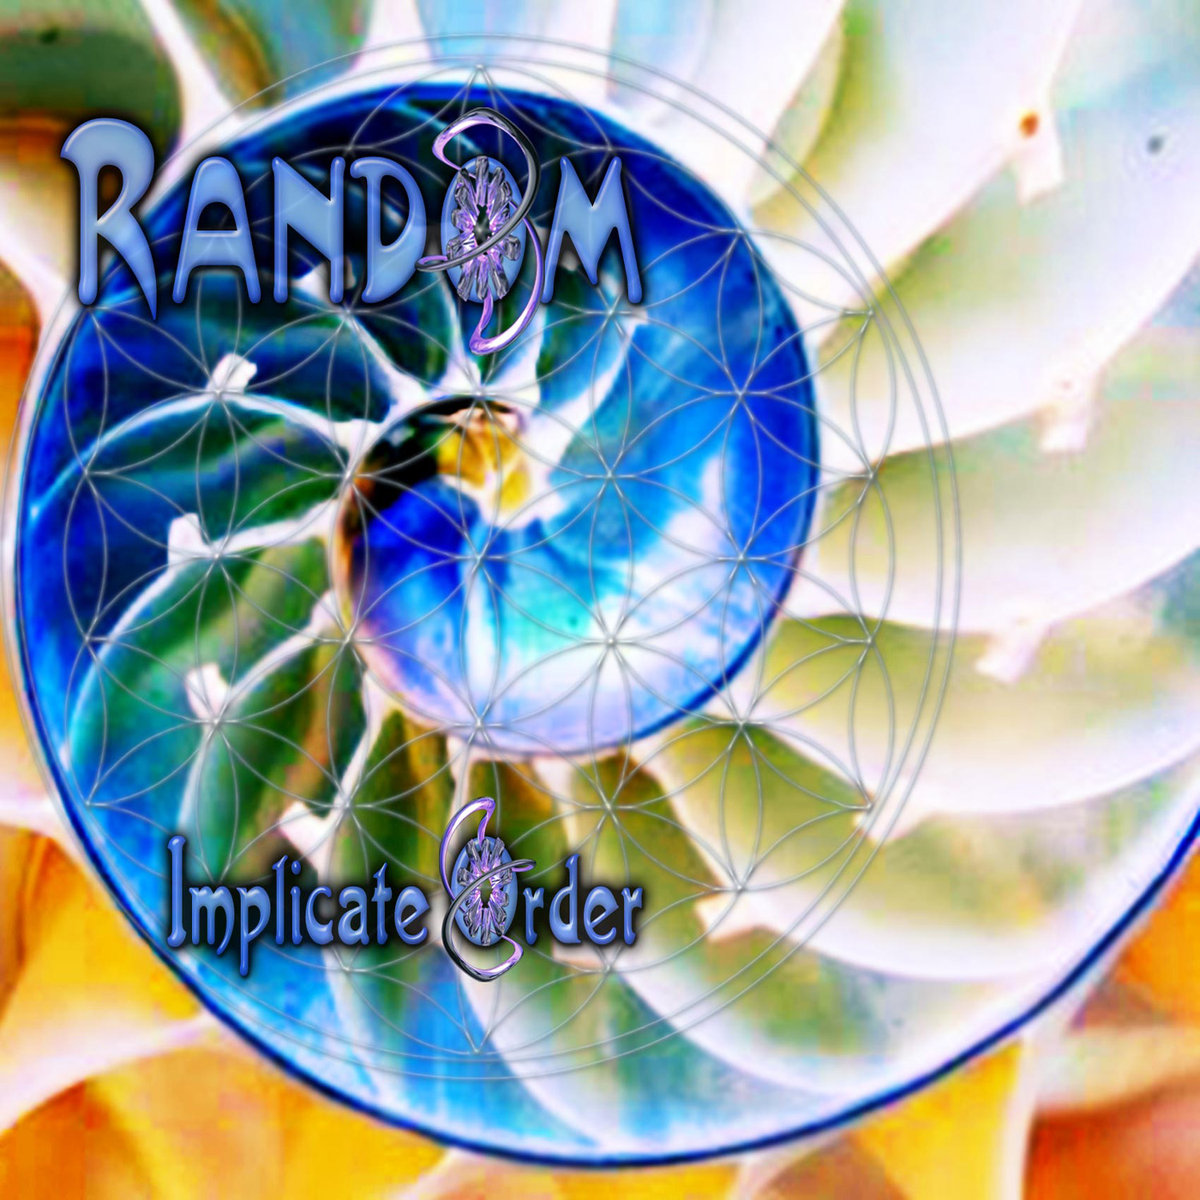 Random - Personal Game @ 'The Implicate Order' album (electronic, goa)